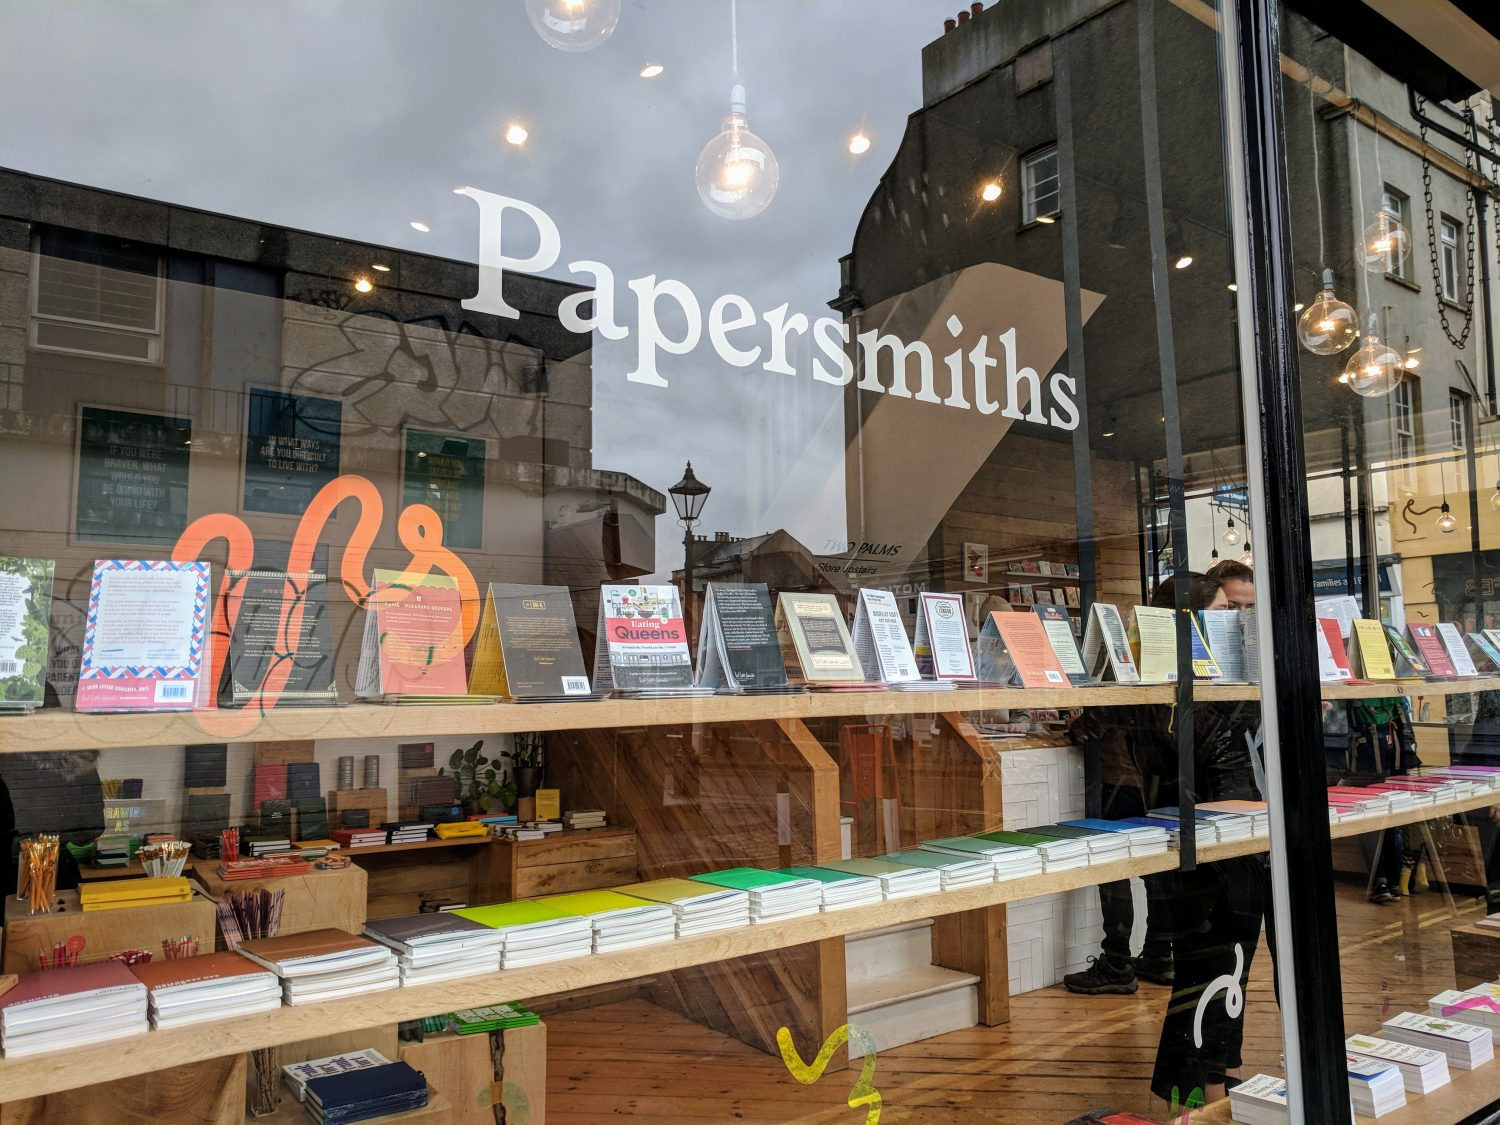 Papersmiths lettering on window